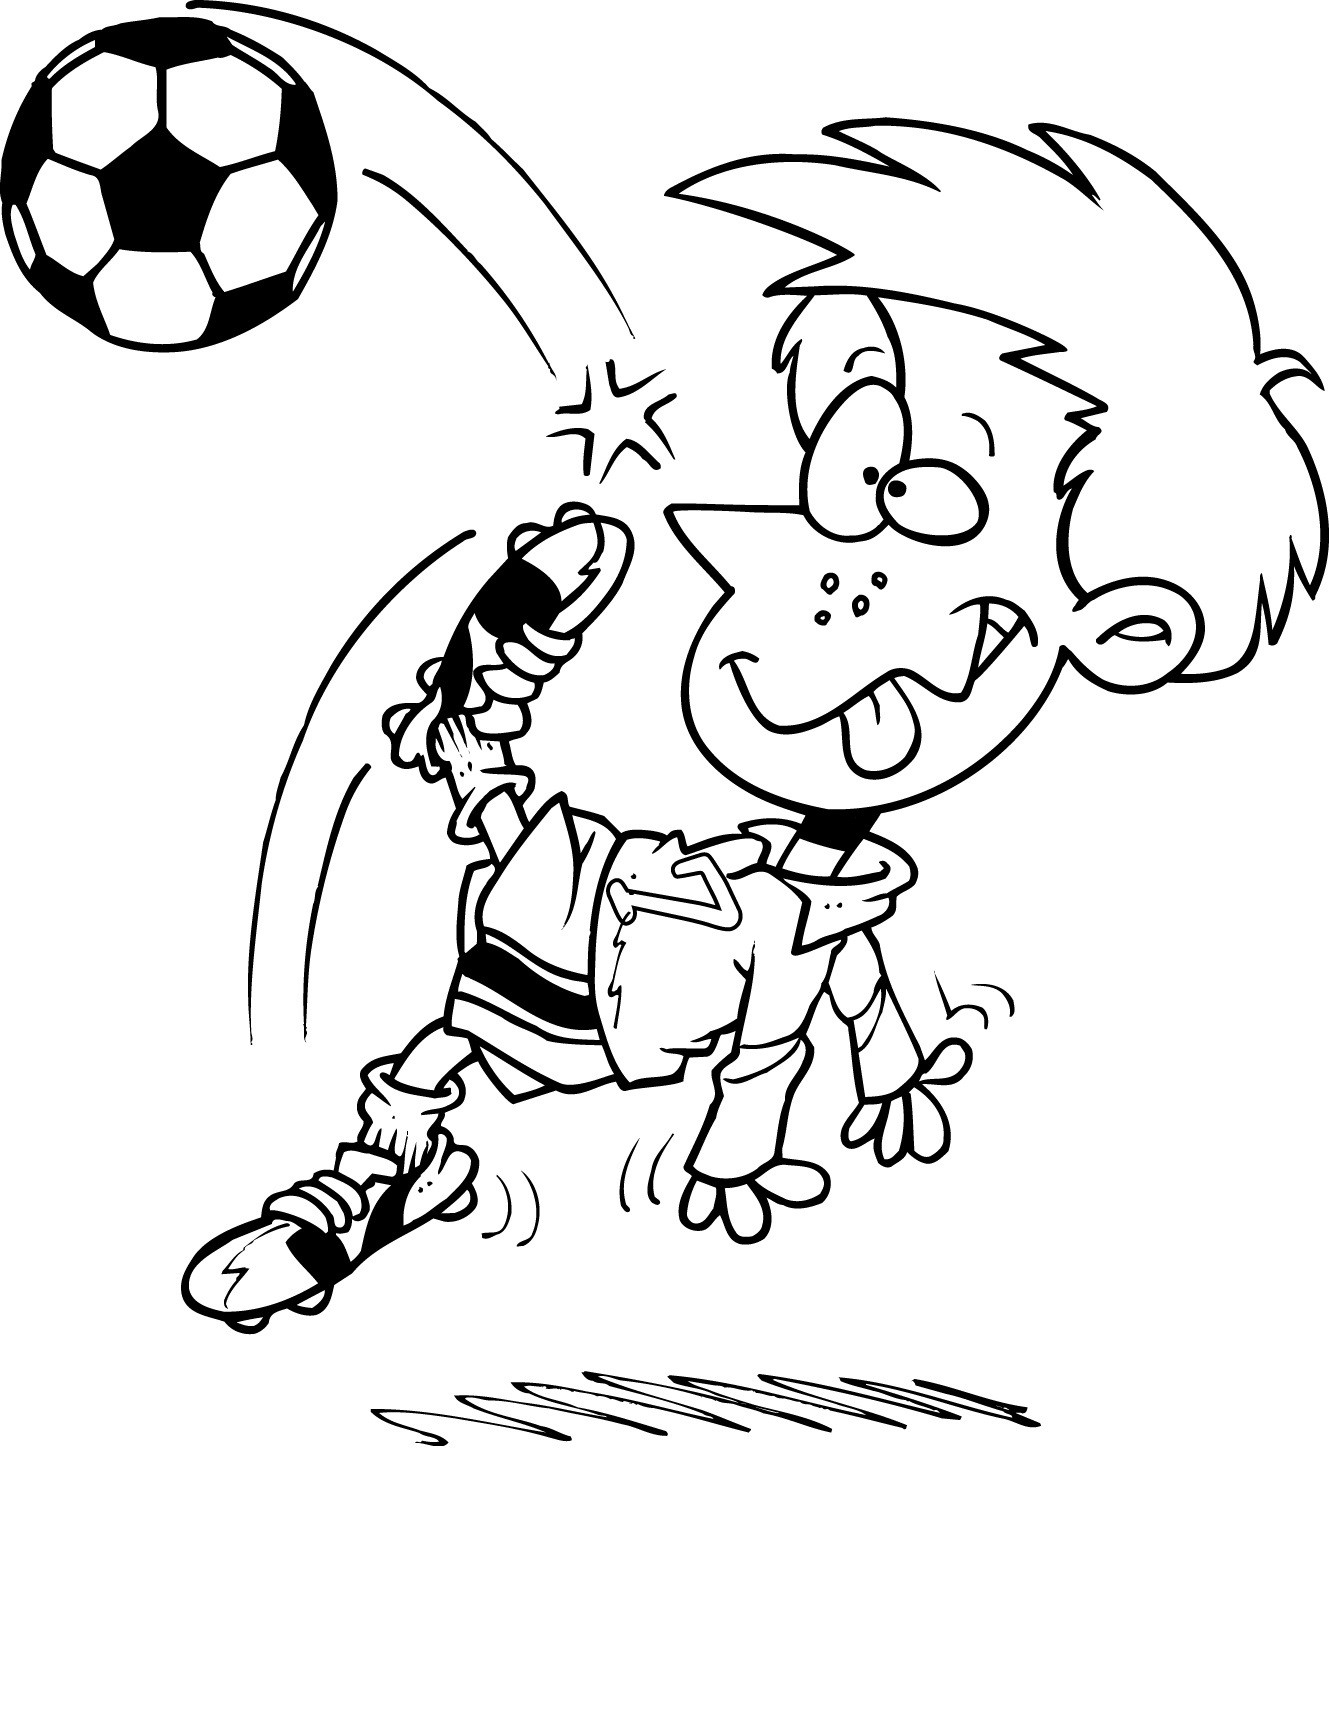 Soccer Coloring Pages For Kids  Free Printable Soccer Coloring Pages For Kids